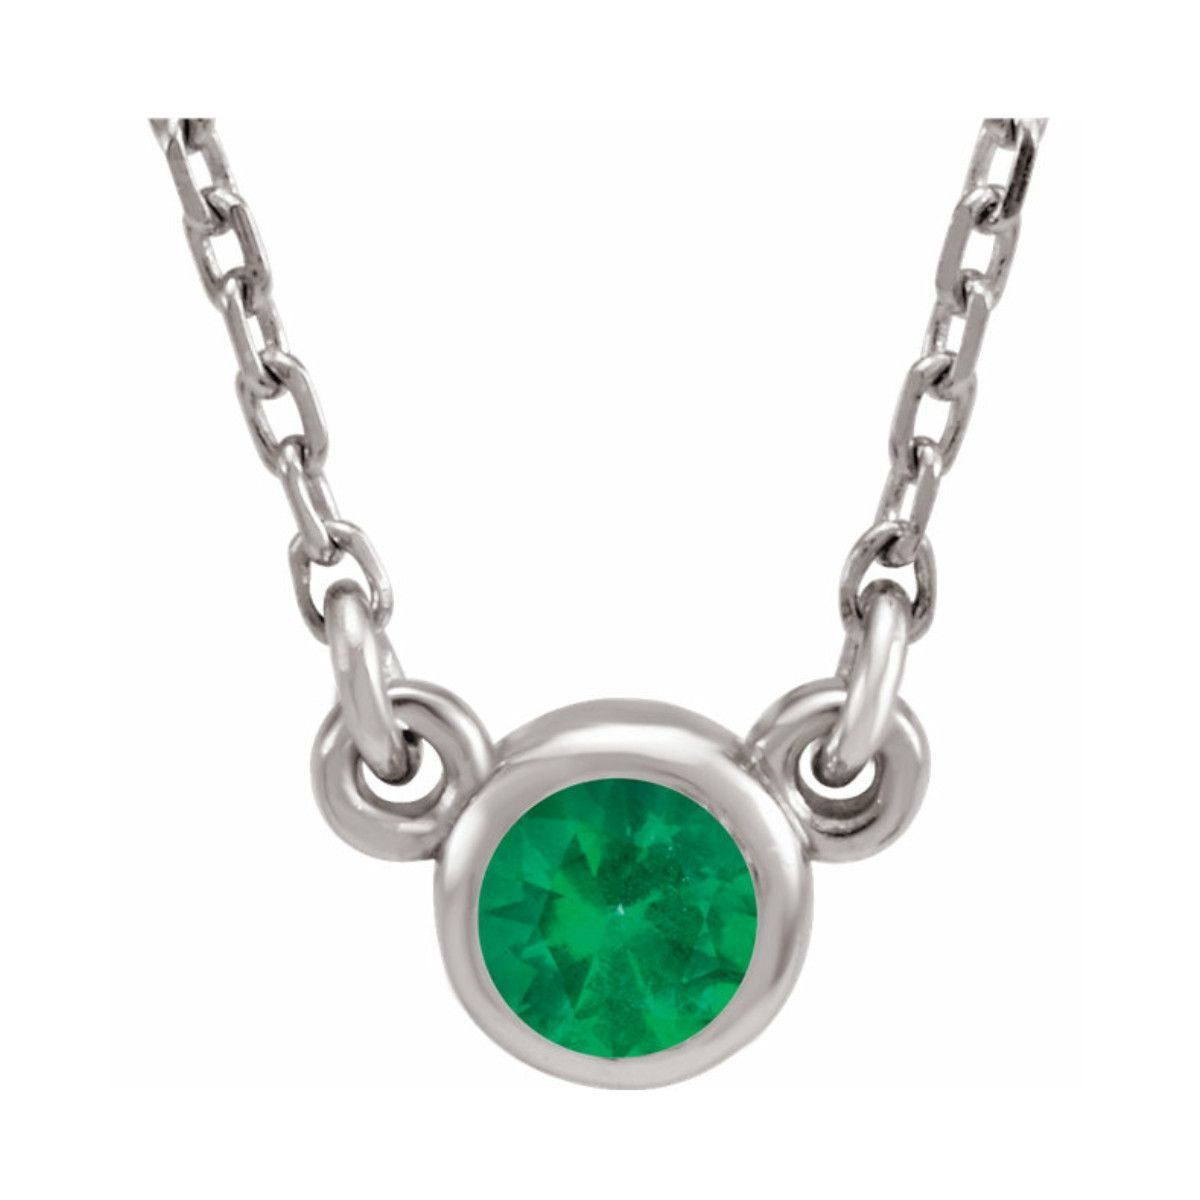 "Small Imitation Emerald Sterling Silver Bezel 16"" Necklace"